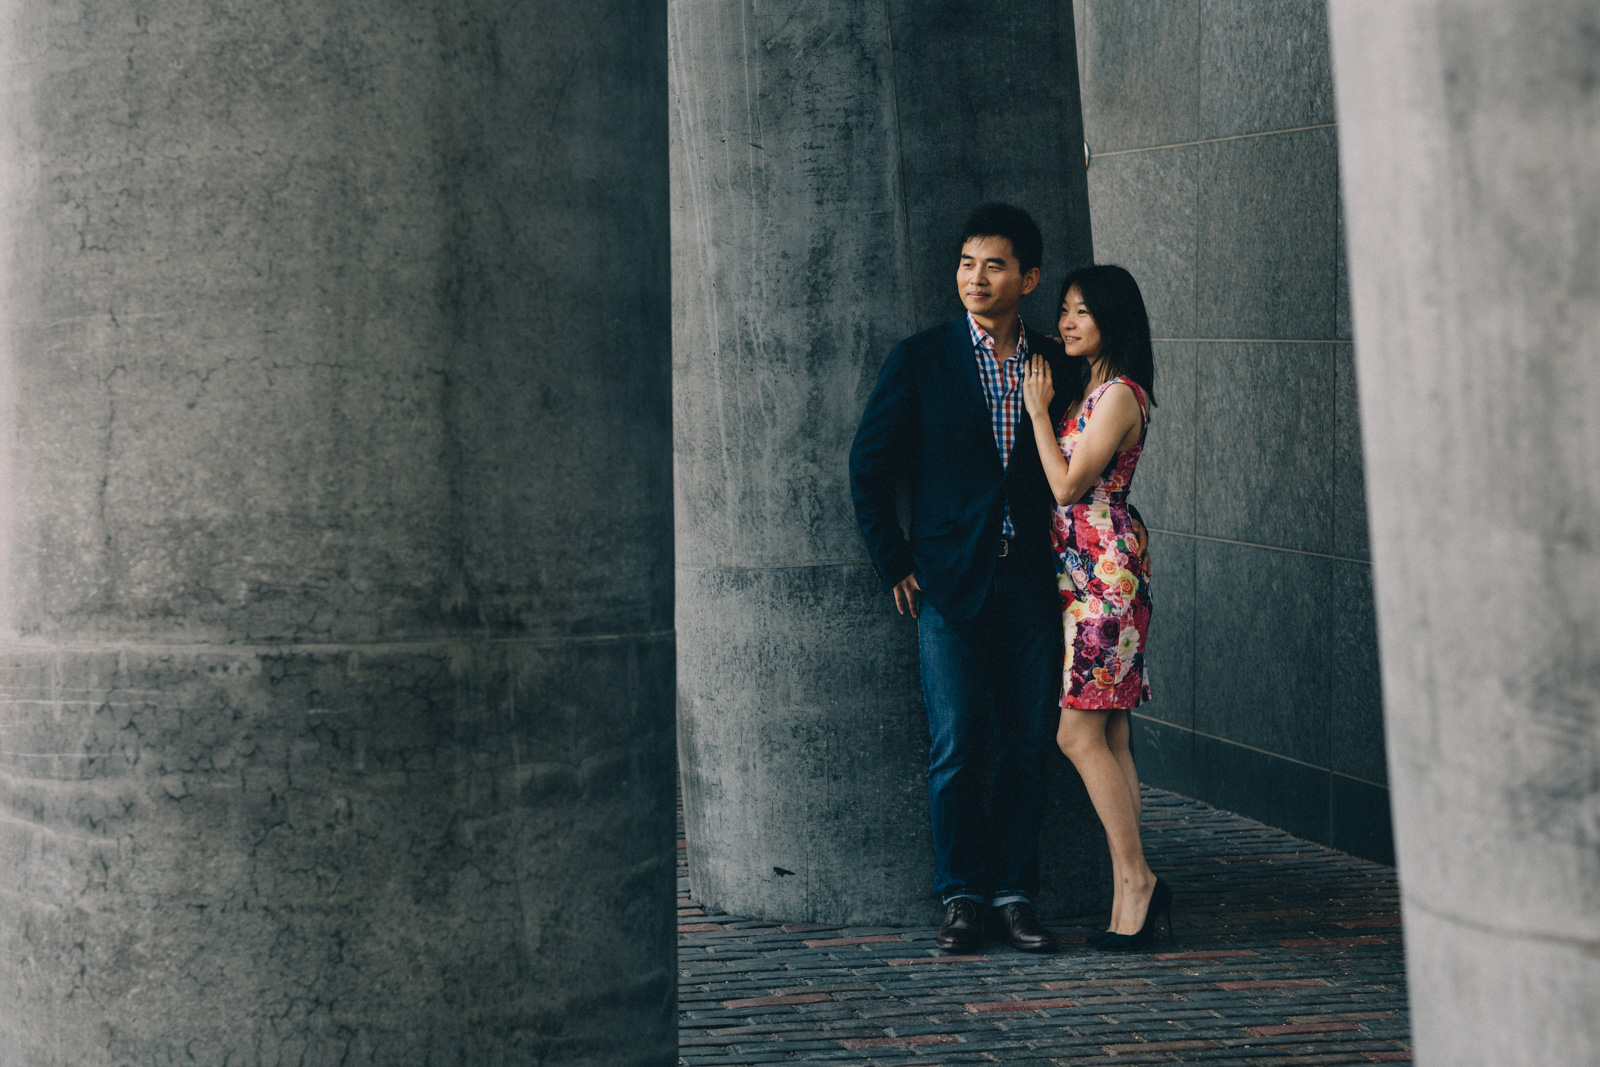 Distillery-District-engagement-photos-Toronto-wedding-photography-by-Sam-Wong-of-Artanis-Collective_007.jpg